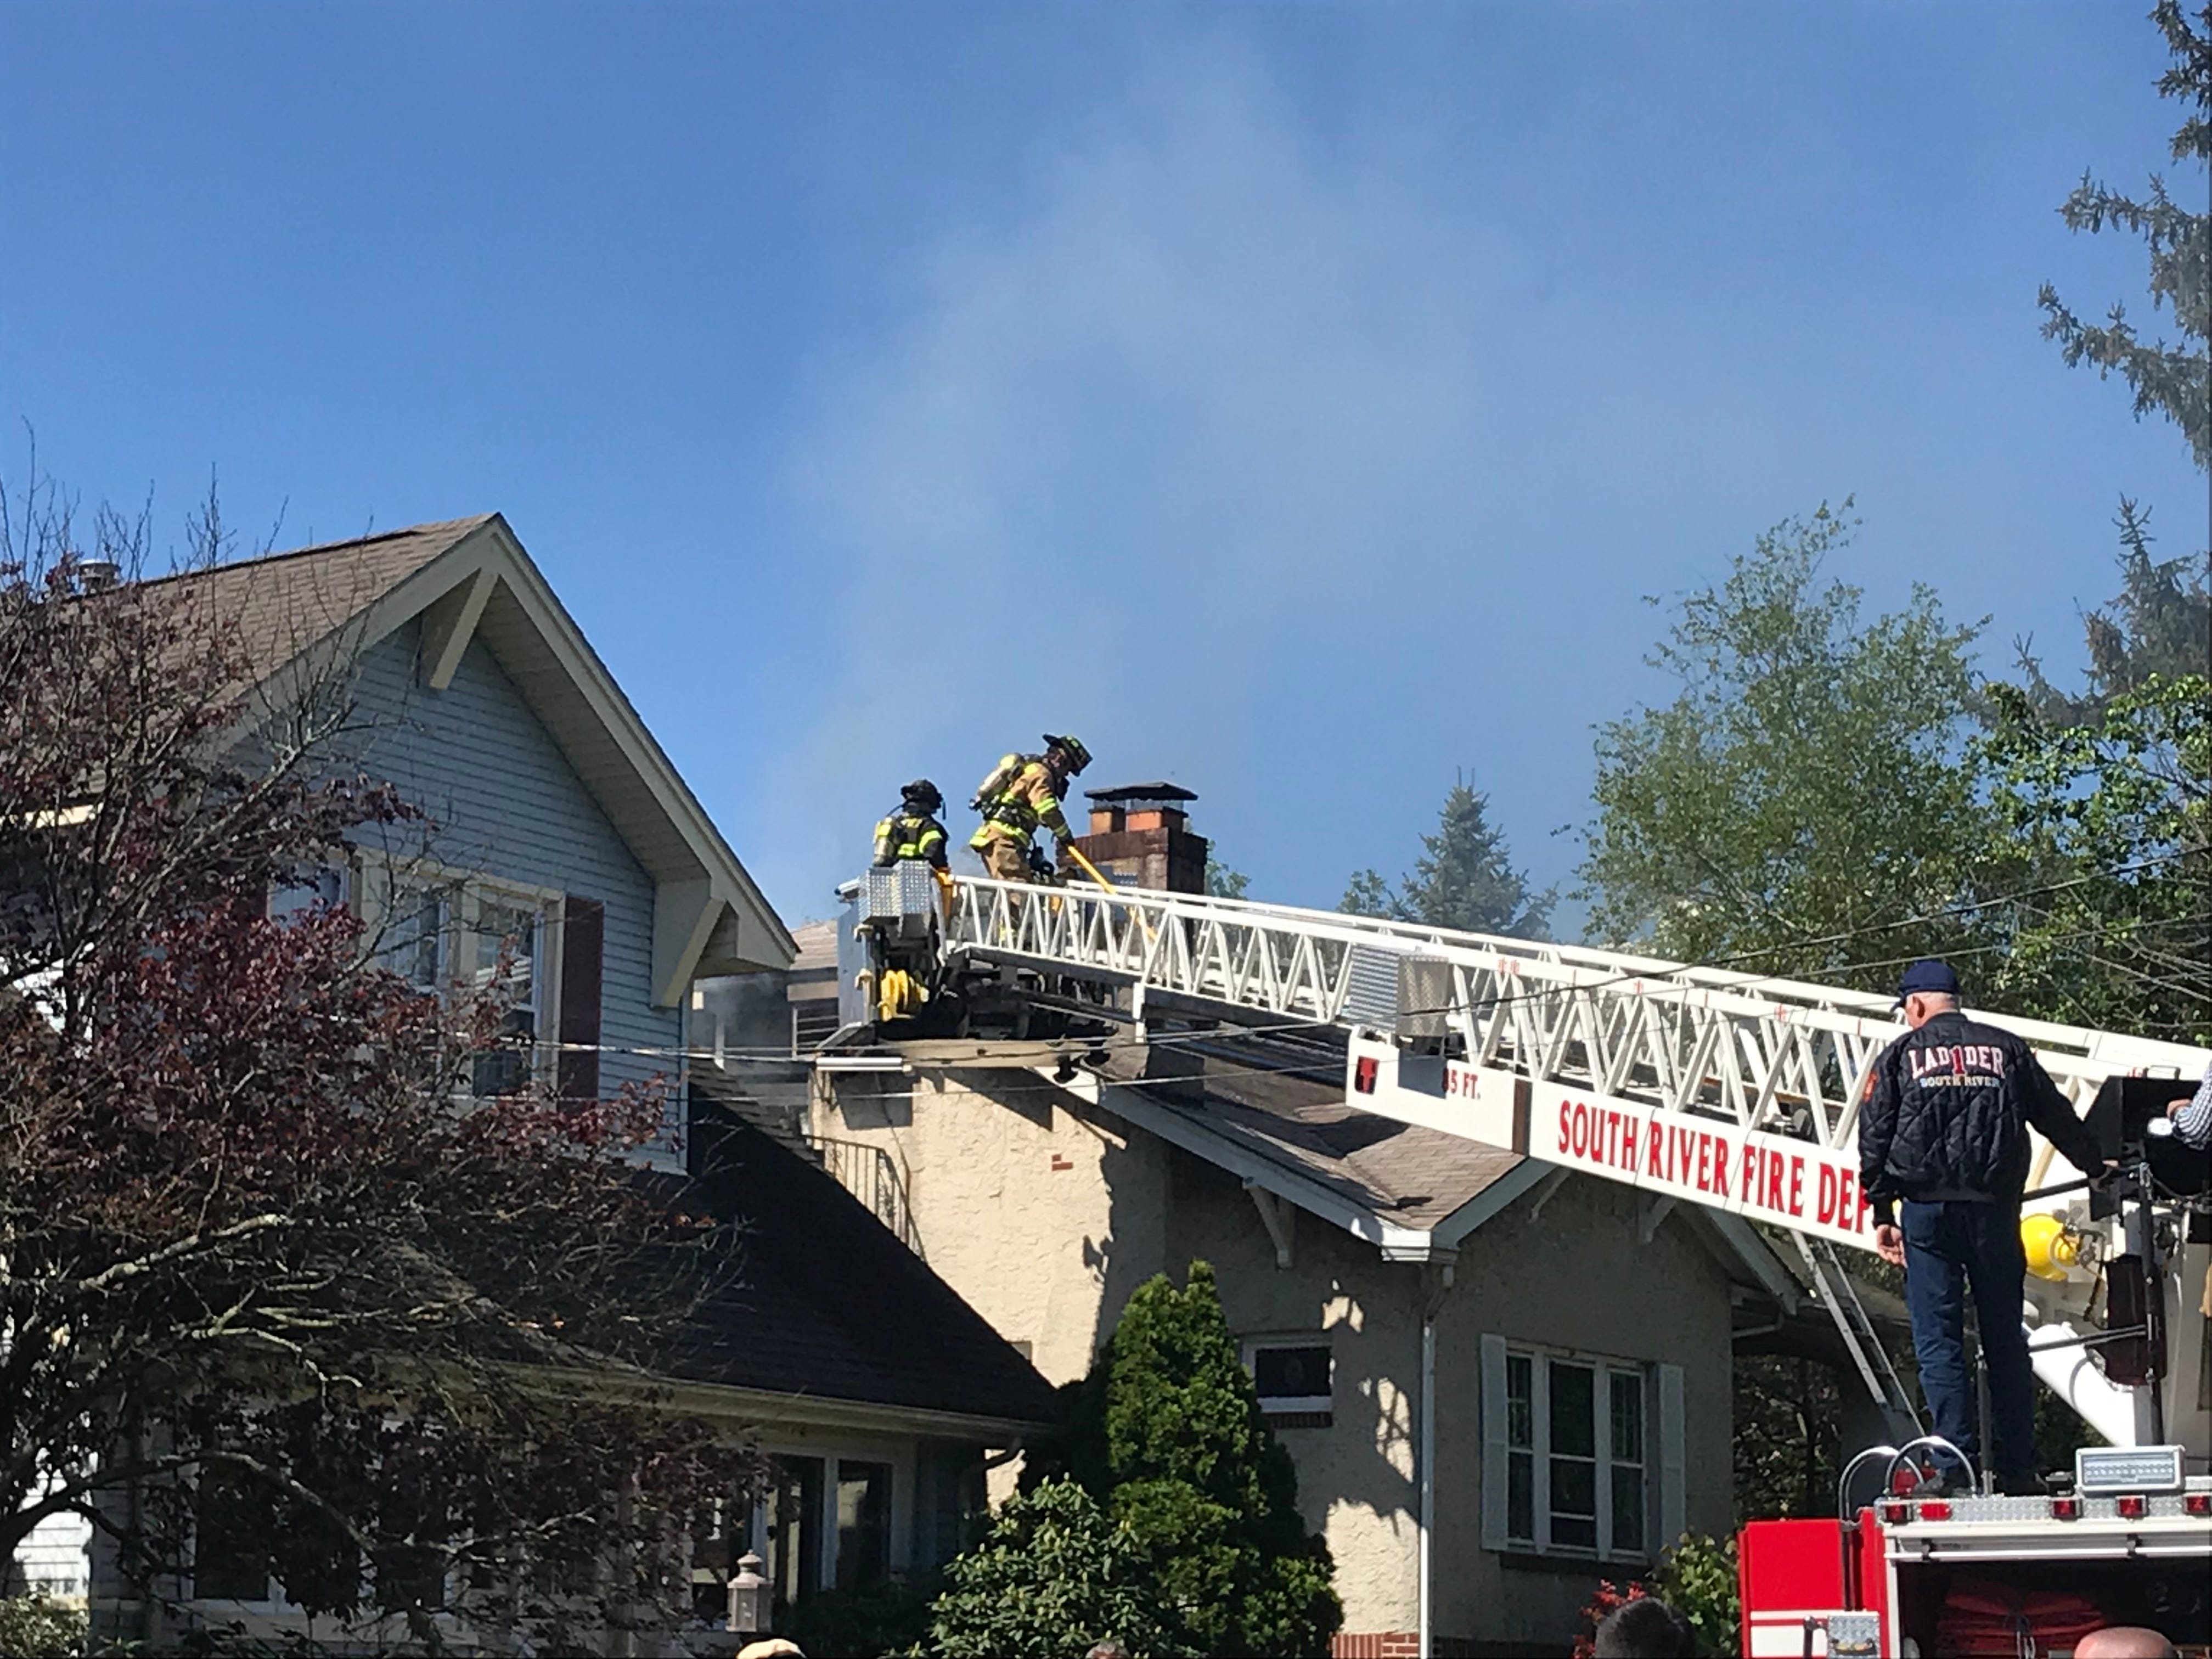 Emergency personnel responded to a fire on Devoe Street in South River on Monday.